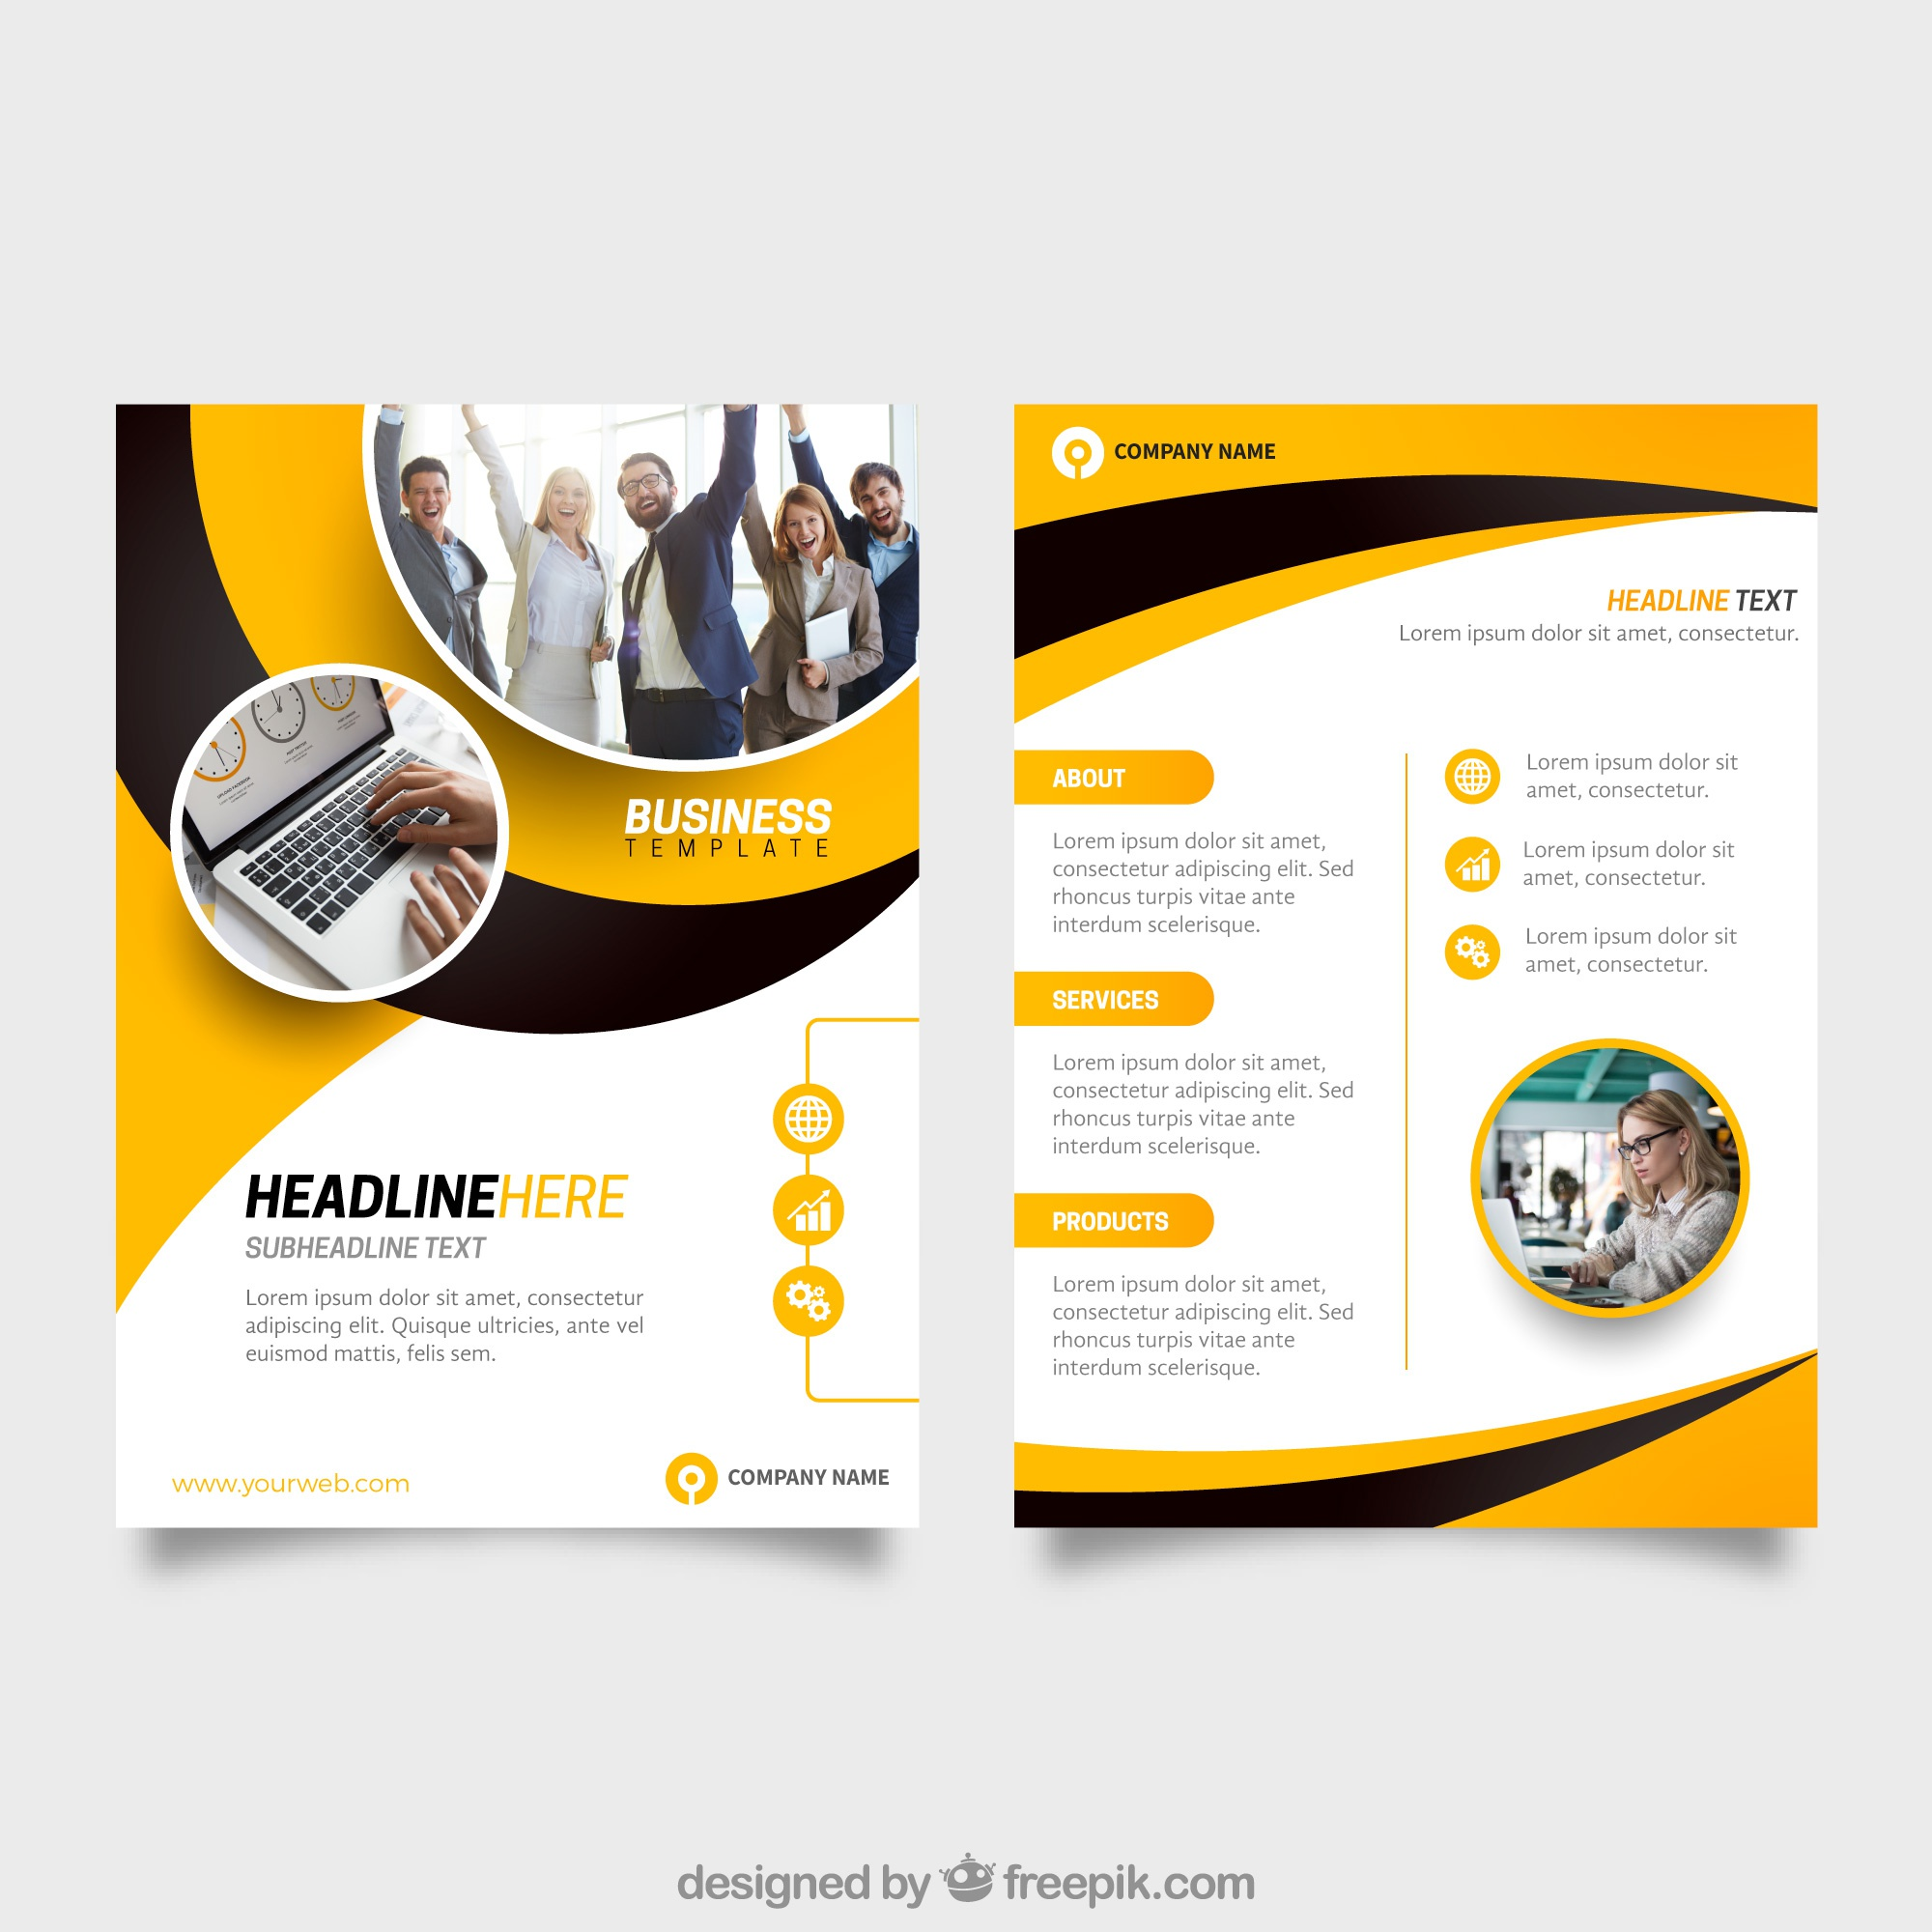 Templates vectors 265800 free files in eps format yellow and black business flyer template flashek